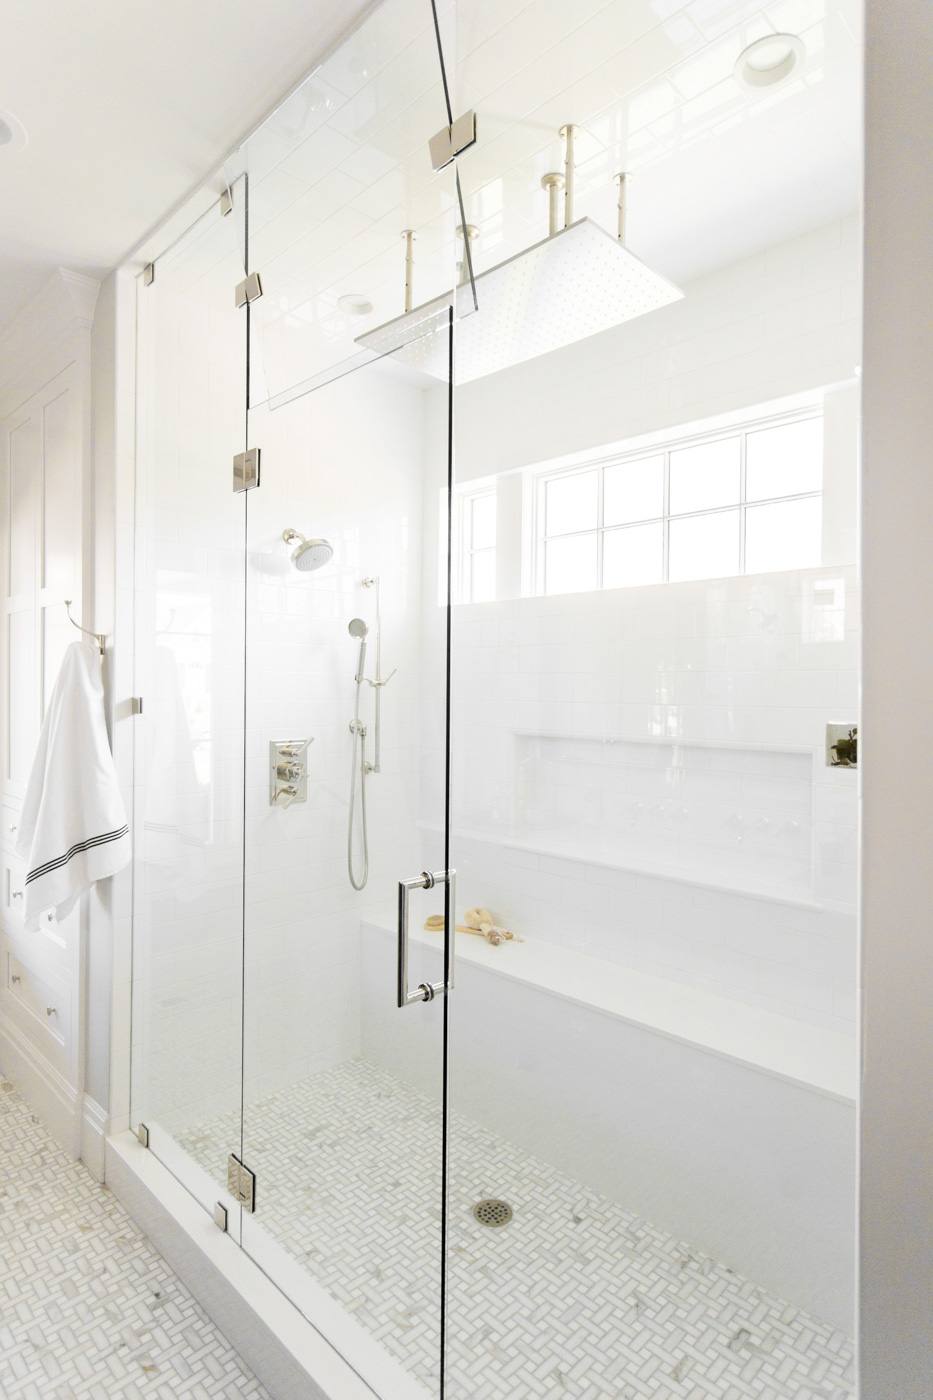 Large glass doors on bathroom shower